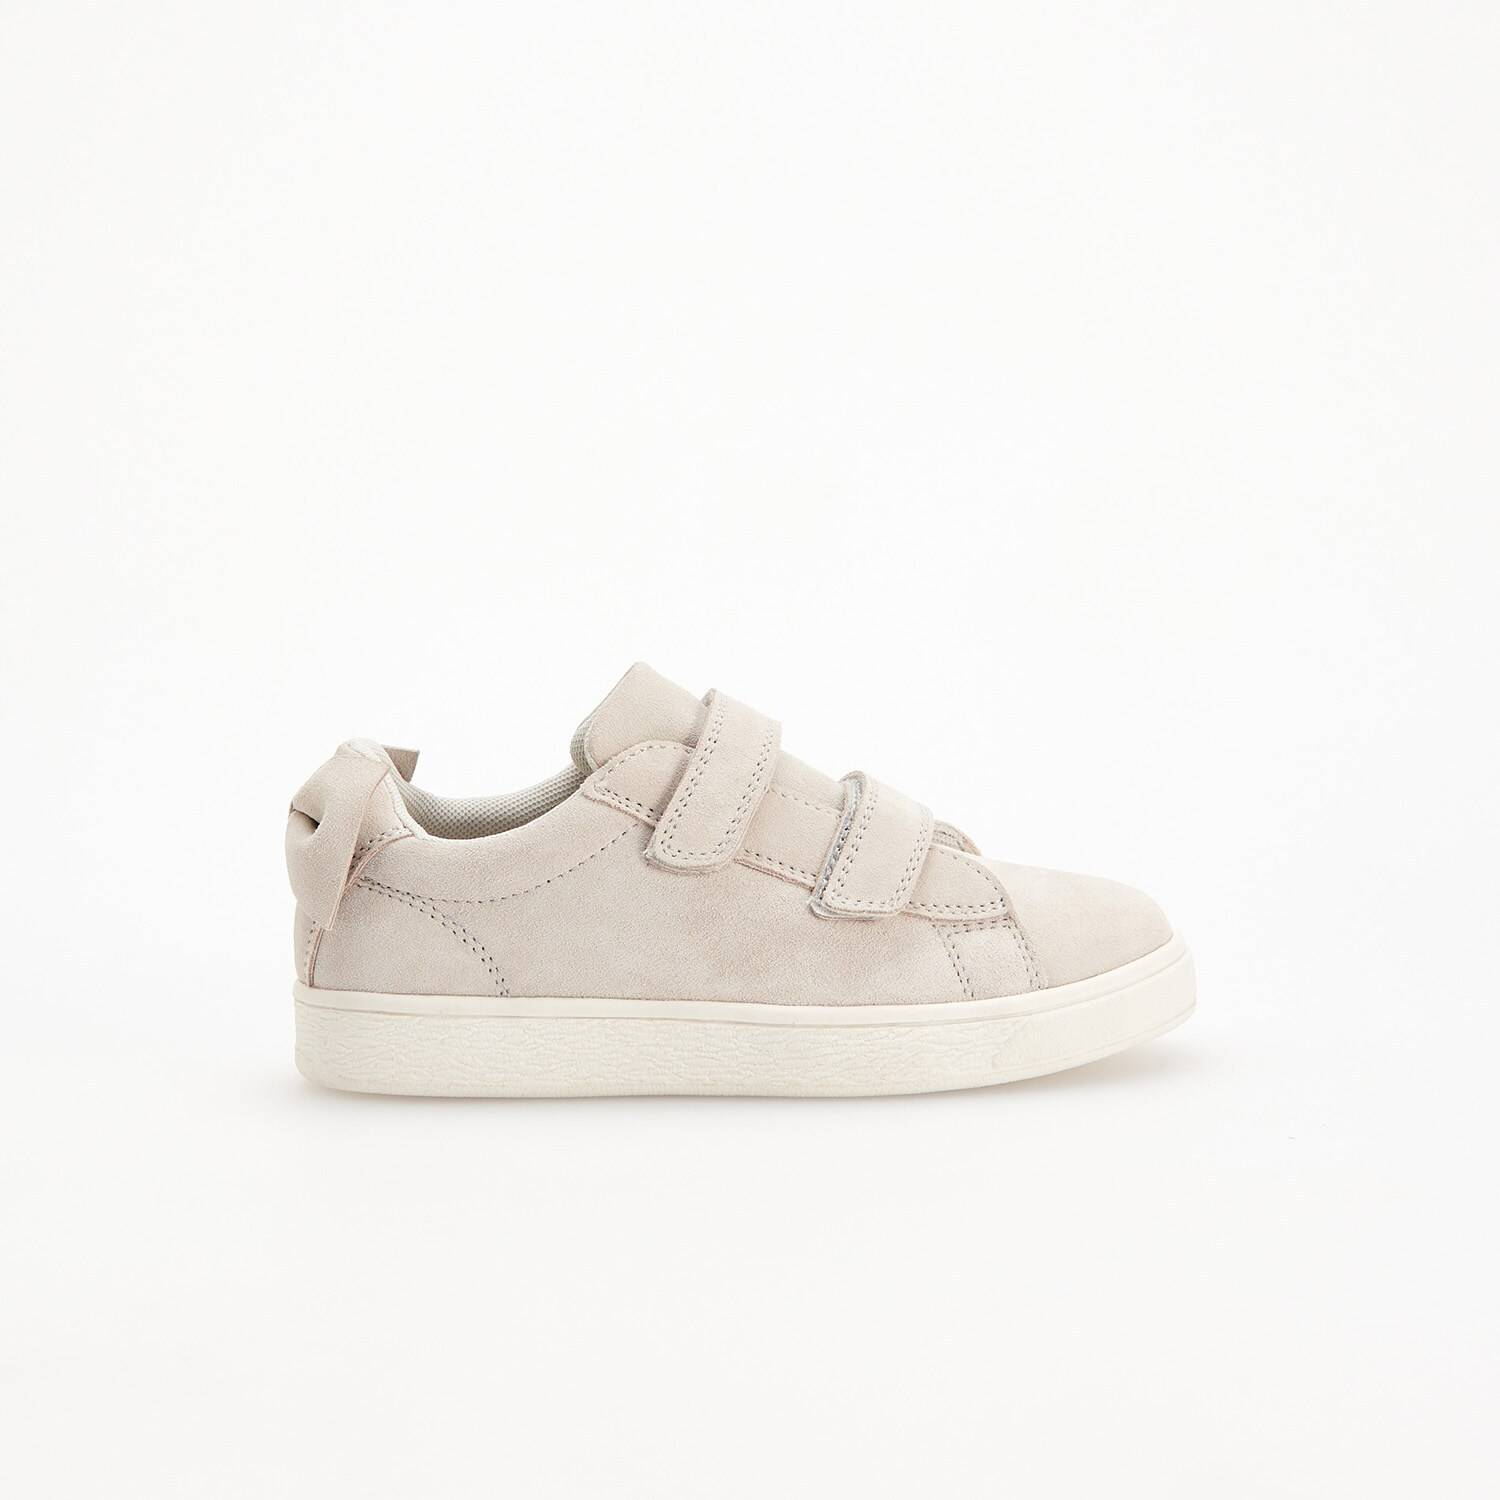 Reserved - Leather trainers with bow detail - Light grey